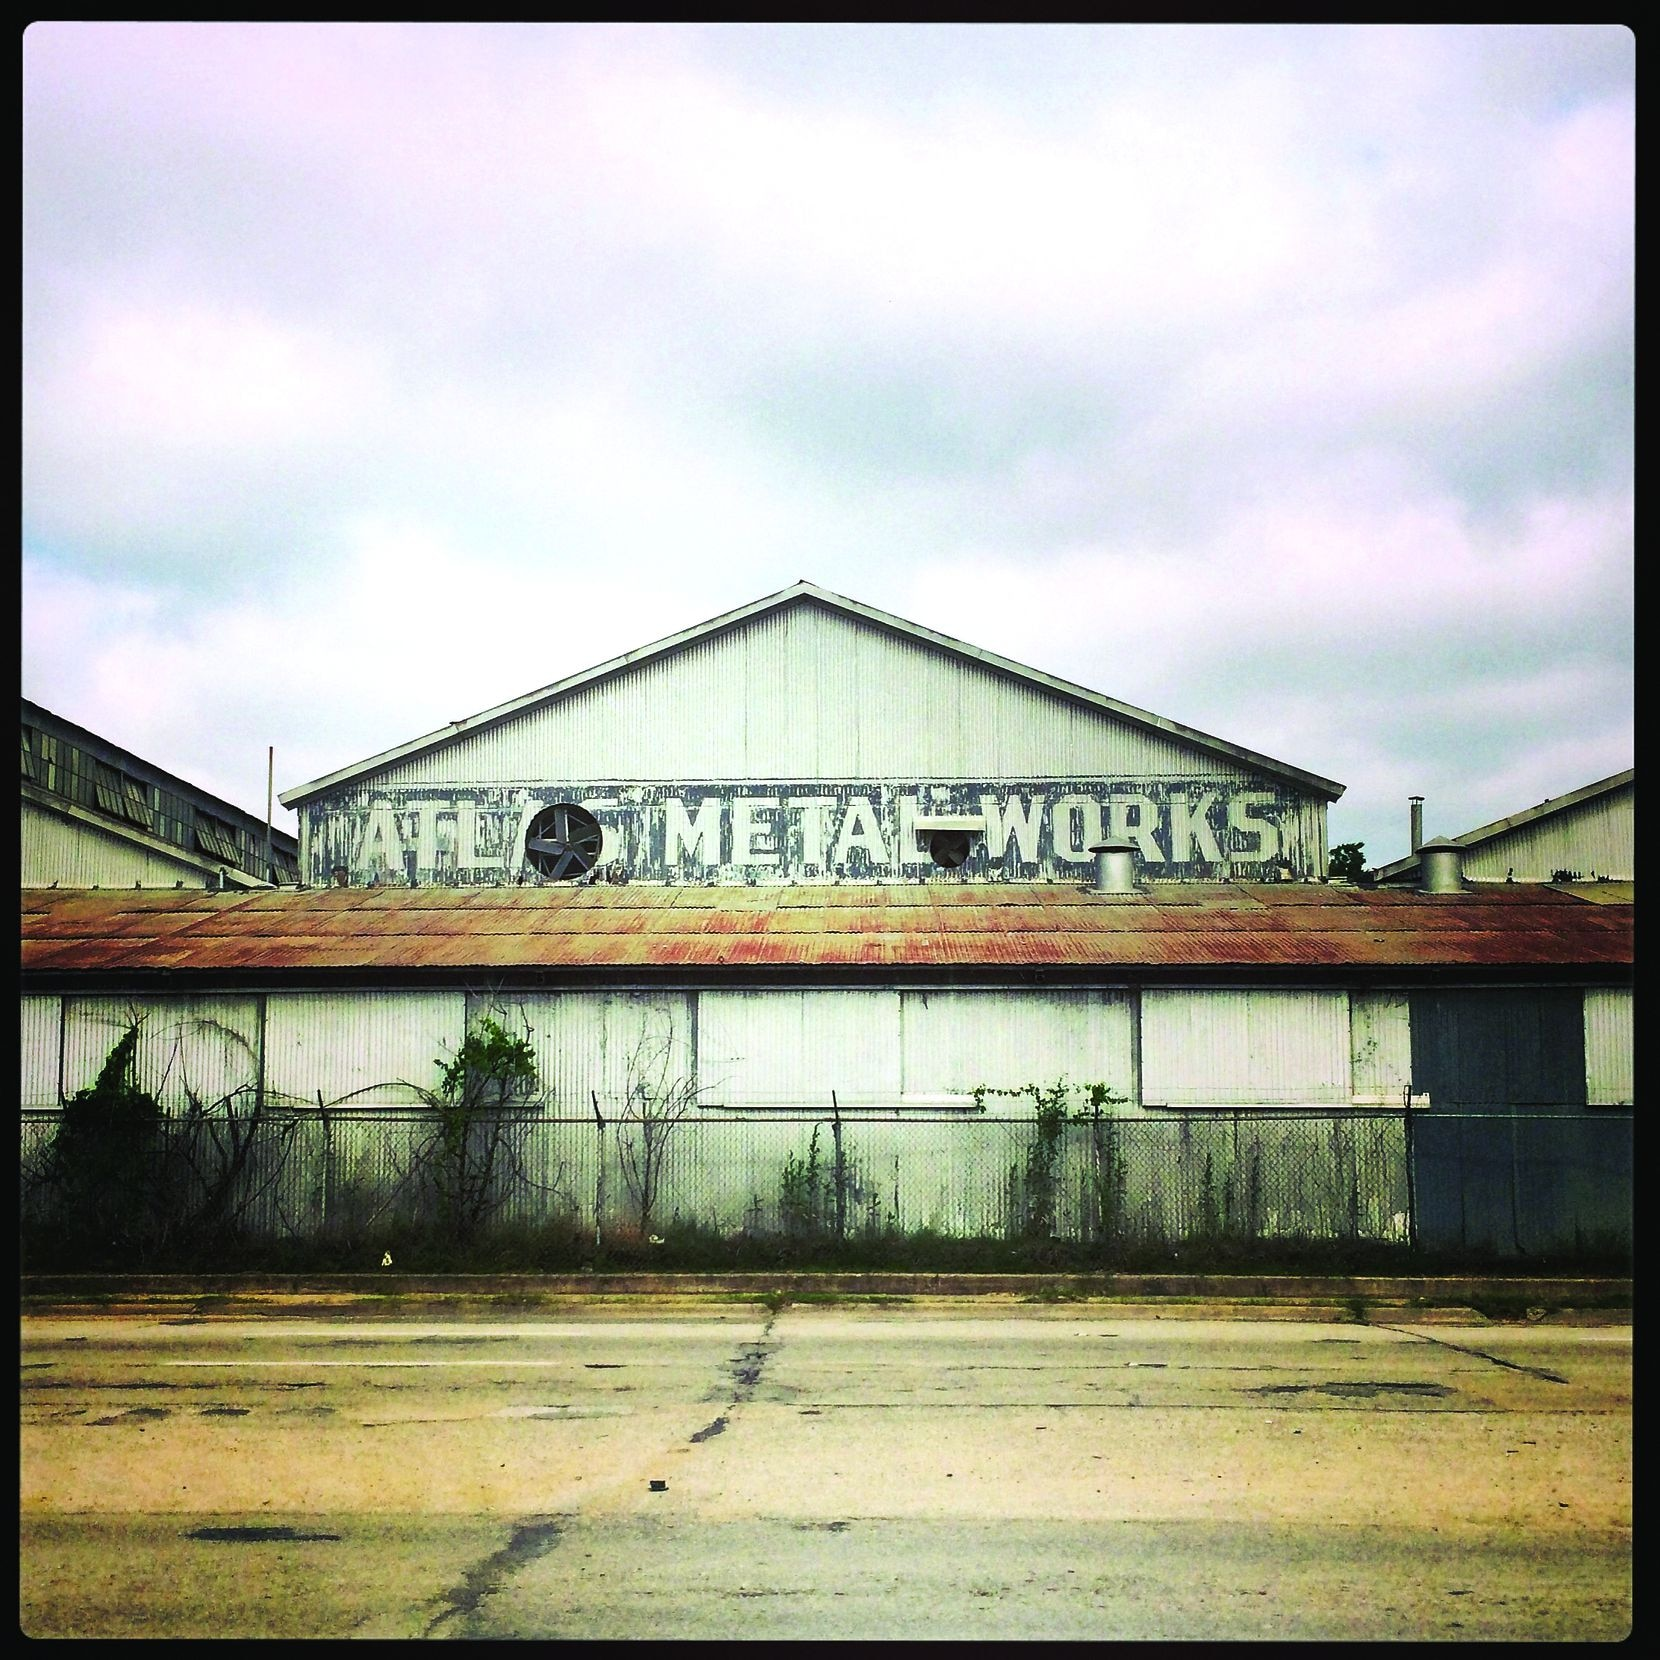 Atlas Metal Works is on Preservation Dallas' 2020 list of the most endangered buildings in Dallas.